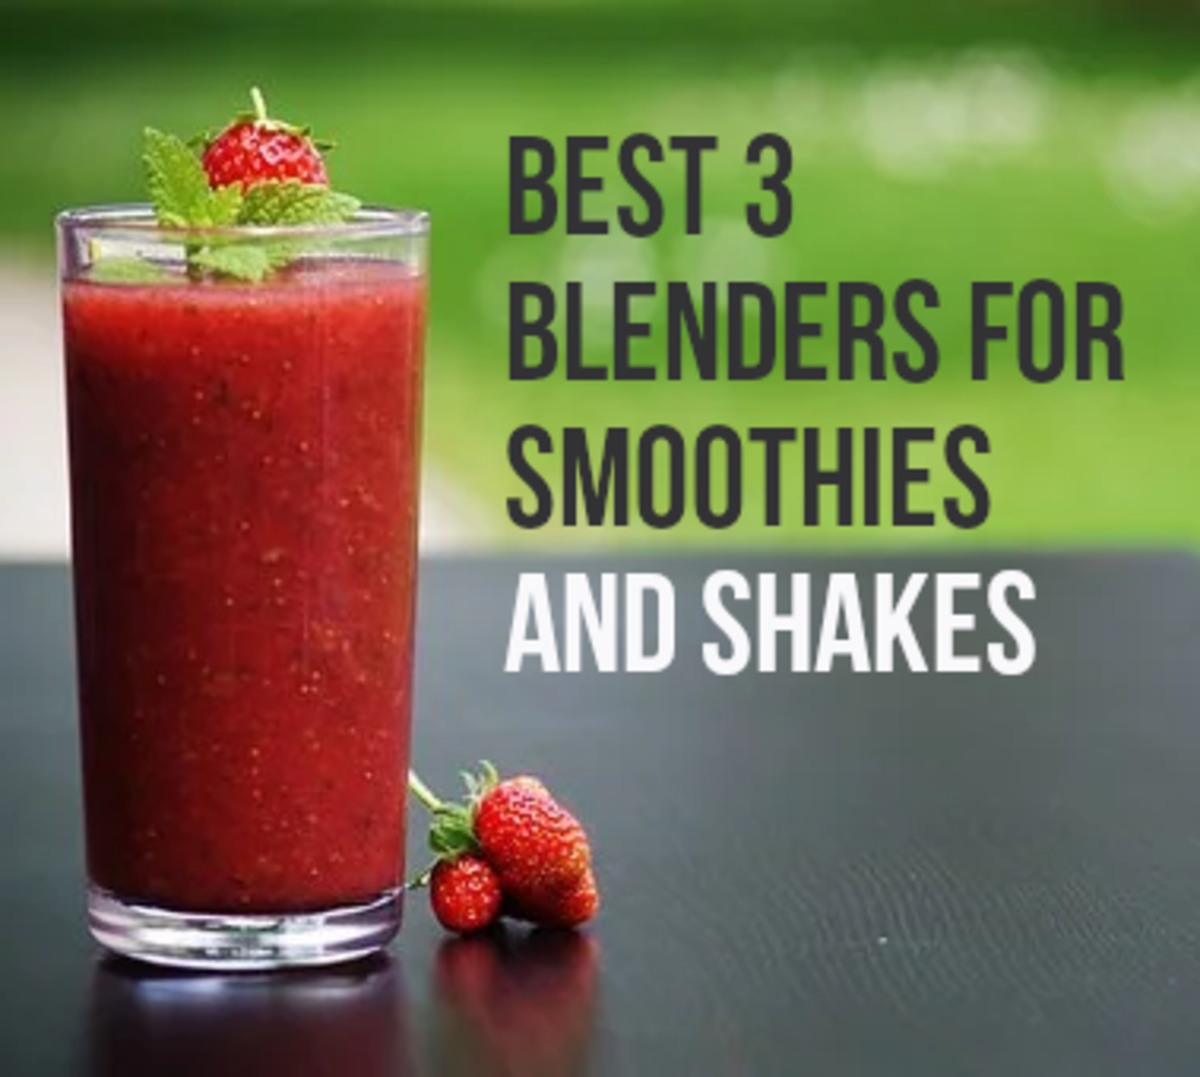 If you are seeking a new personal blender and want recommendations, please read on...